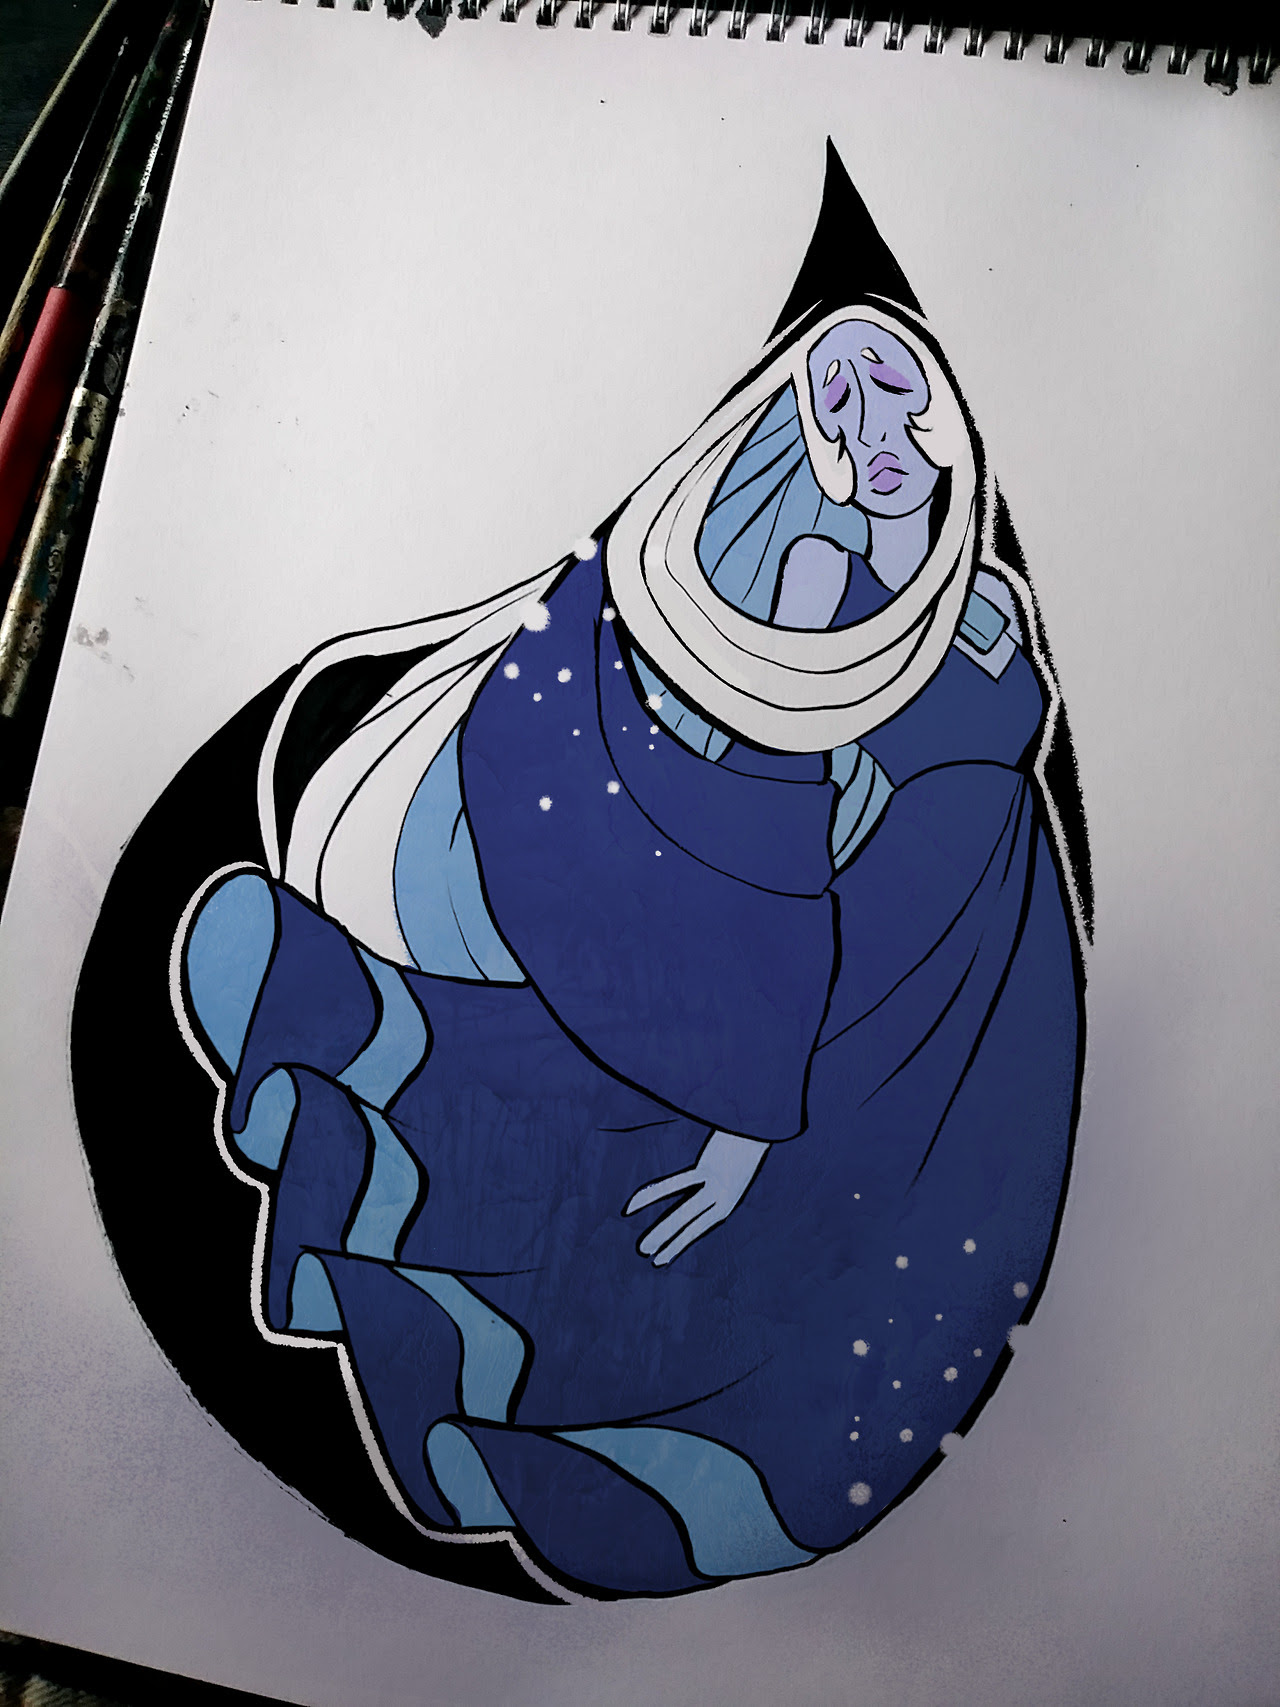 Inktober 2017 - Day 08 to Day 015 Blue Diamond, Asgore and Valter were Patreon requests! Thank you again so much for your lovely requests dear potatoes :D